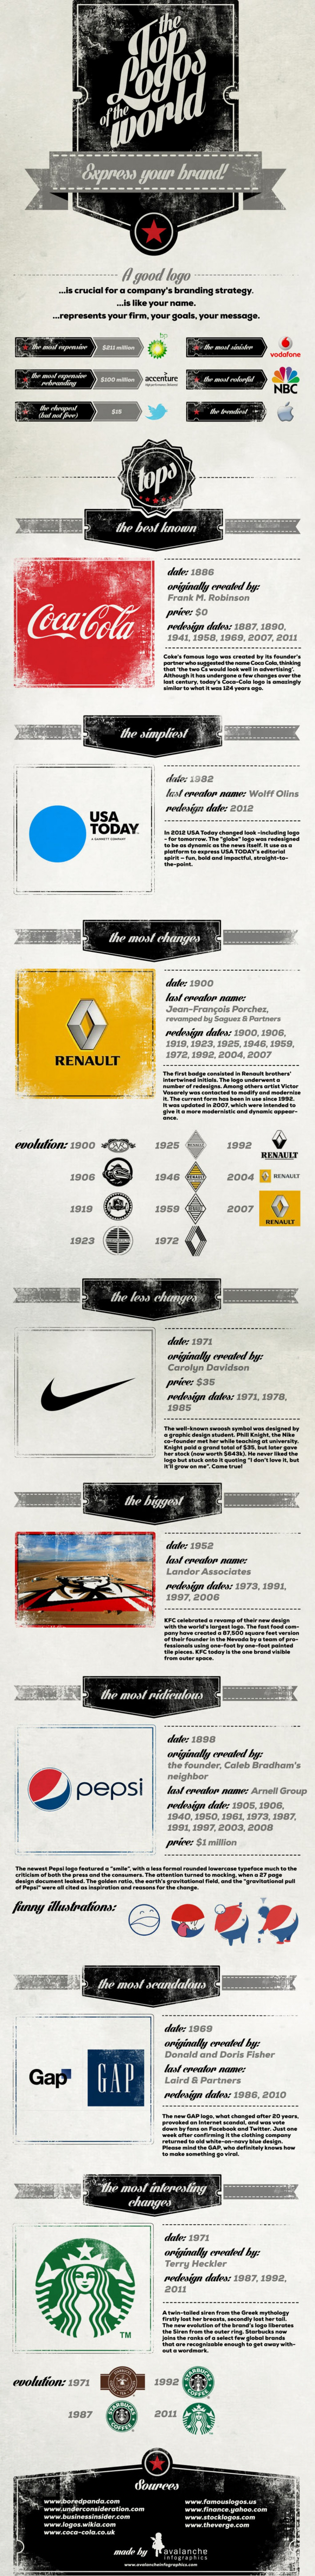 The top logos of the World Infographic